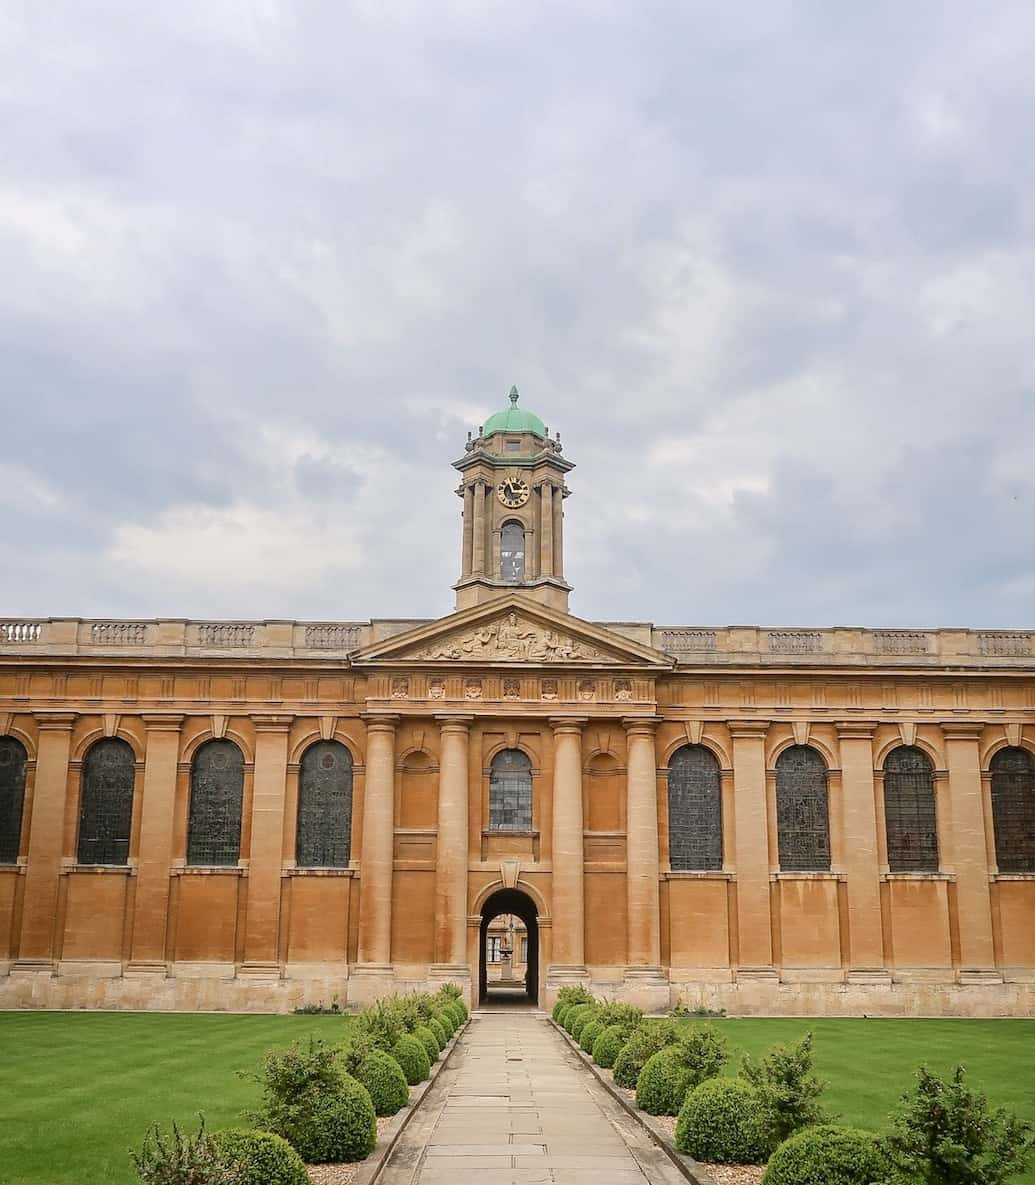 day trip to oxford from London, oxford college